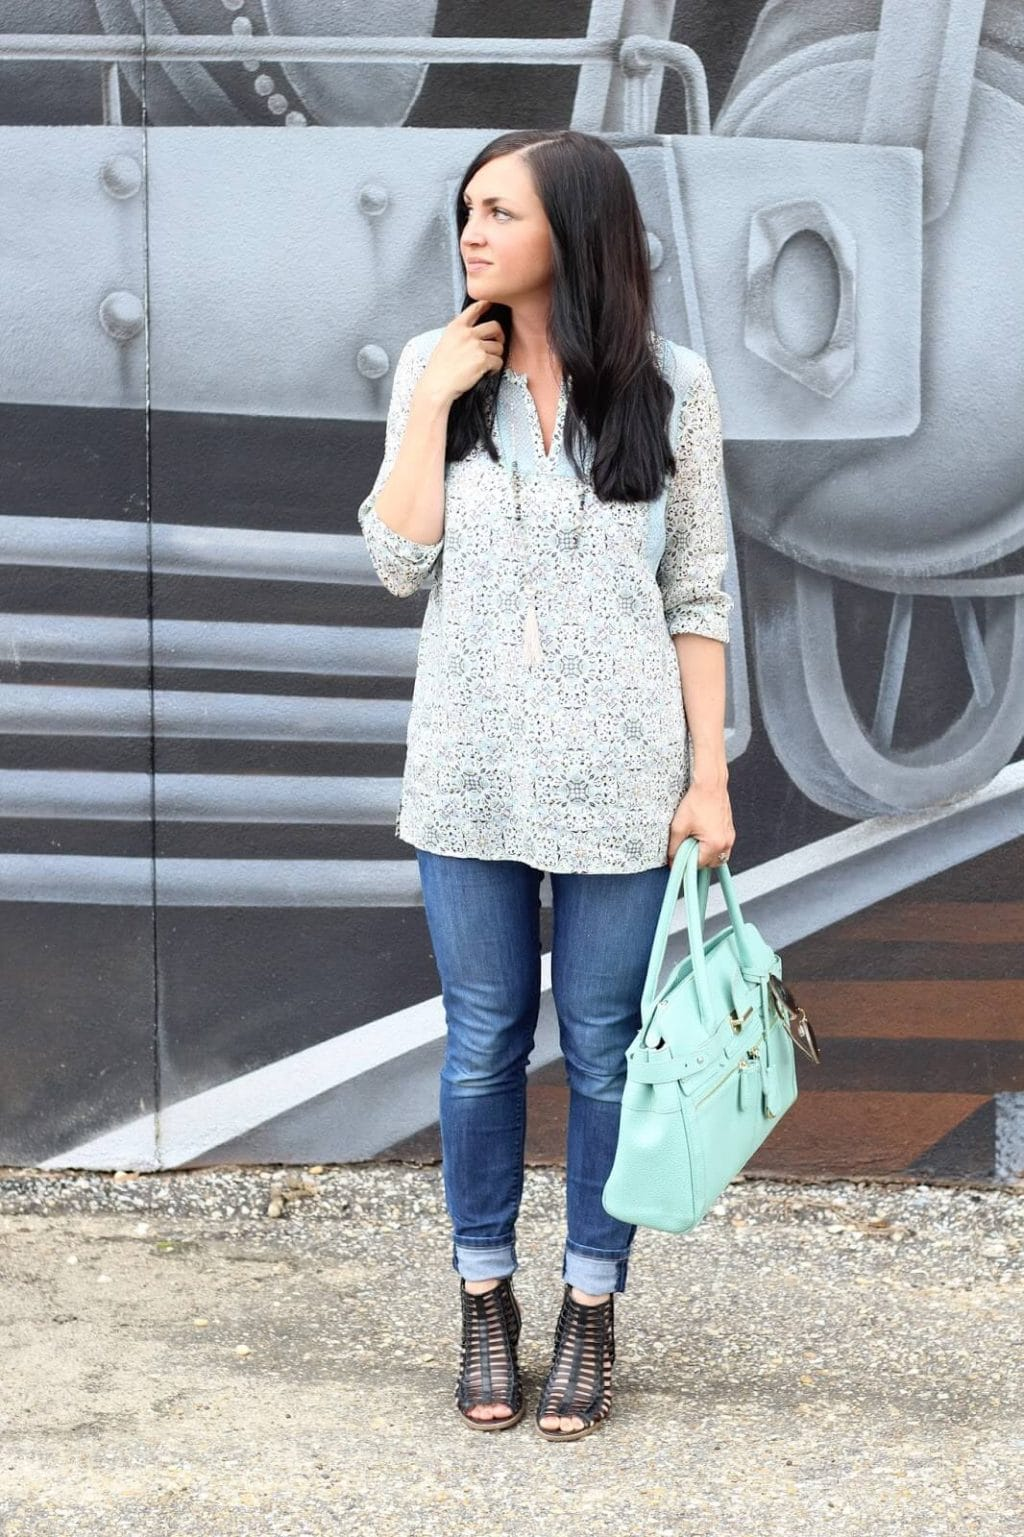 Black sandals, mint bag, floral tunic